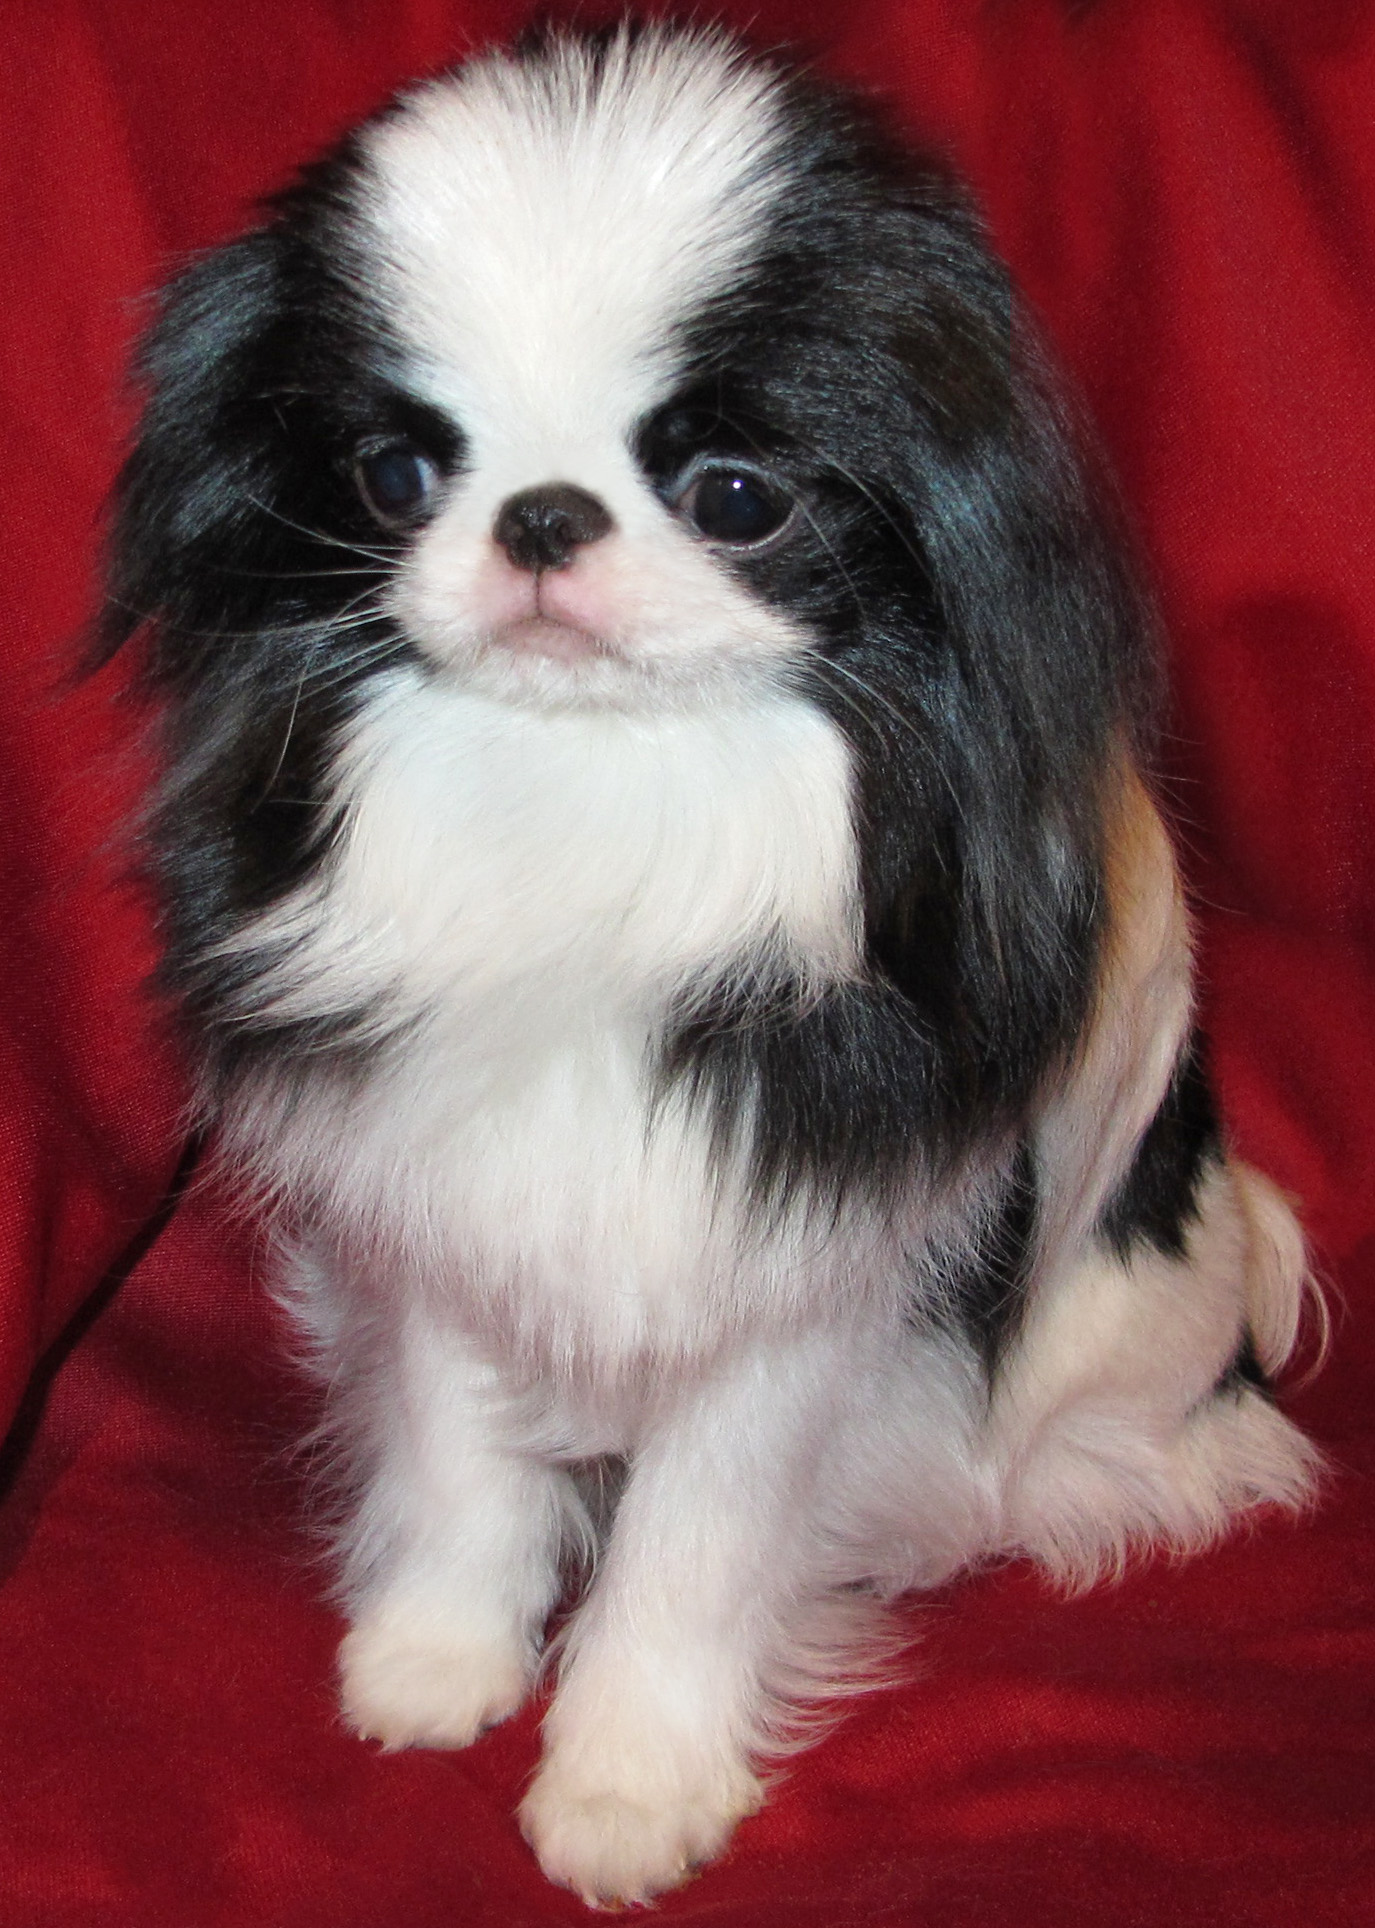 Japanese Chin dog portrait  wallpaper